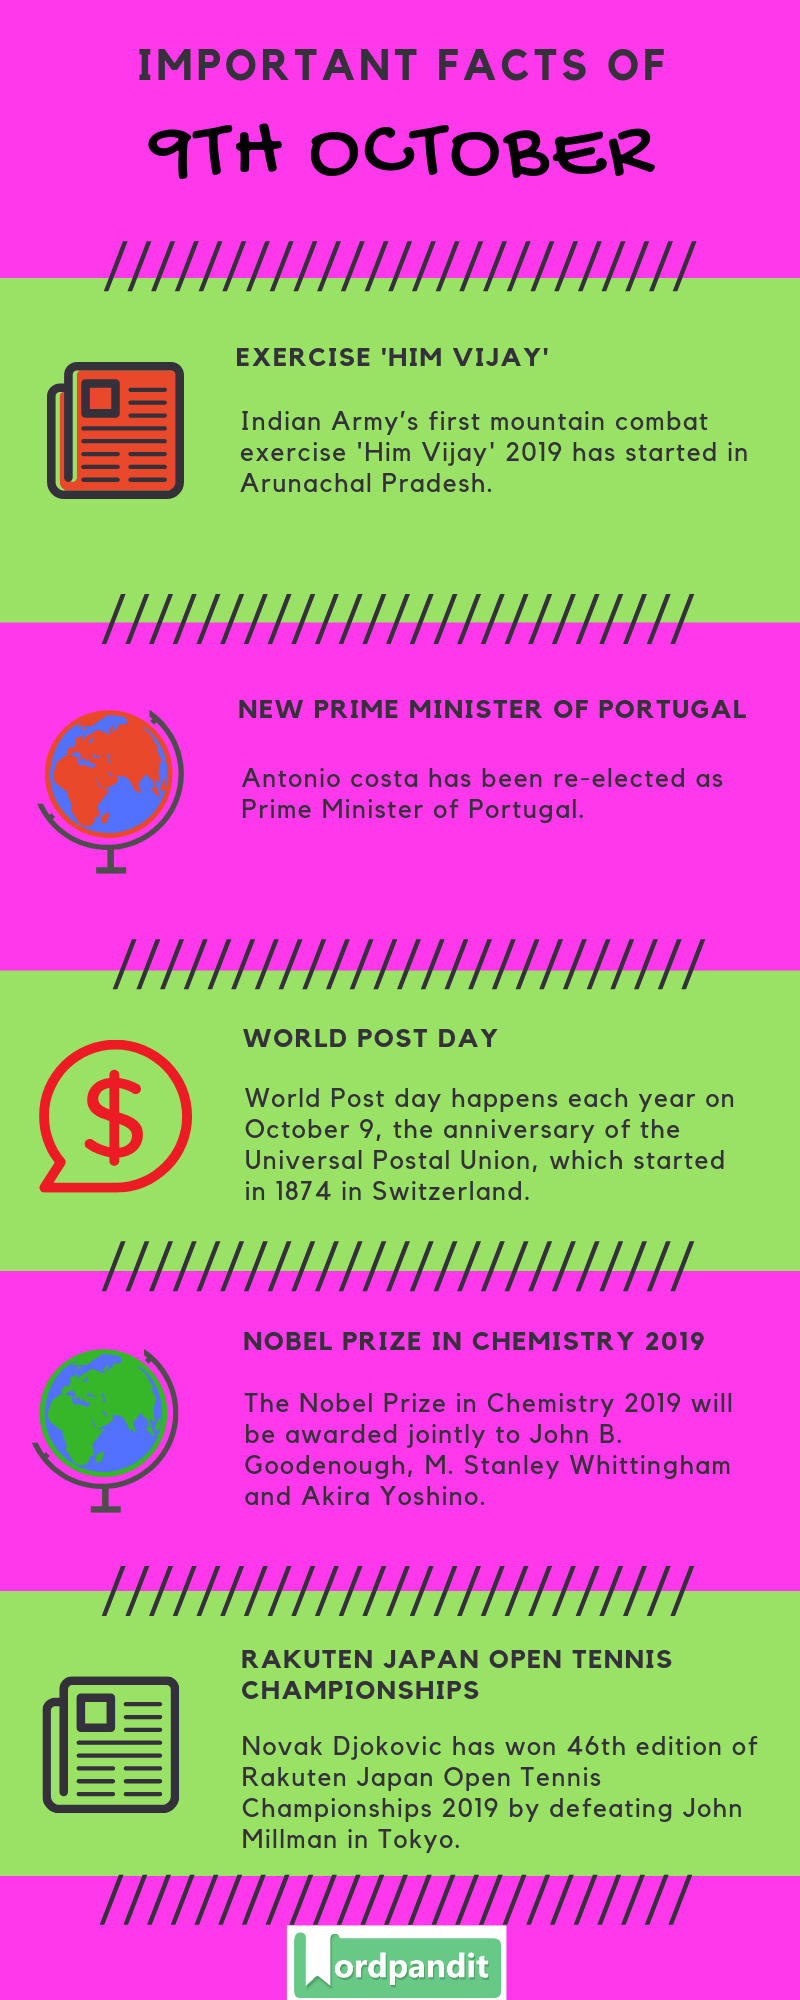 Daily Current Affairs 9 October 2019 Current Affairs Quiz 9 October 2019 Current Affairs Infographic